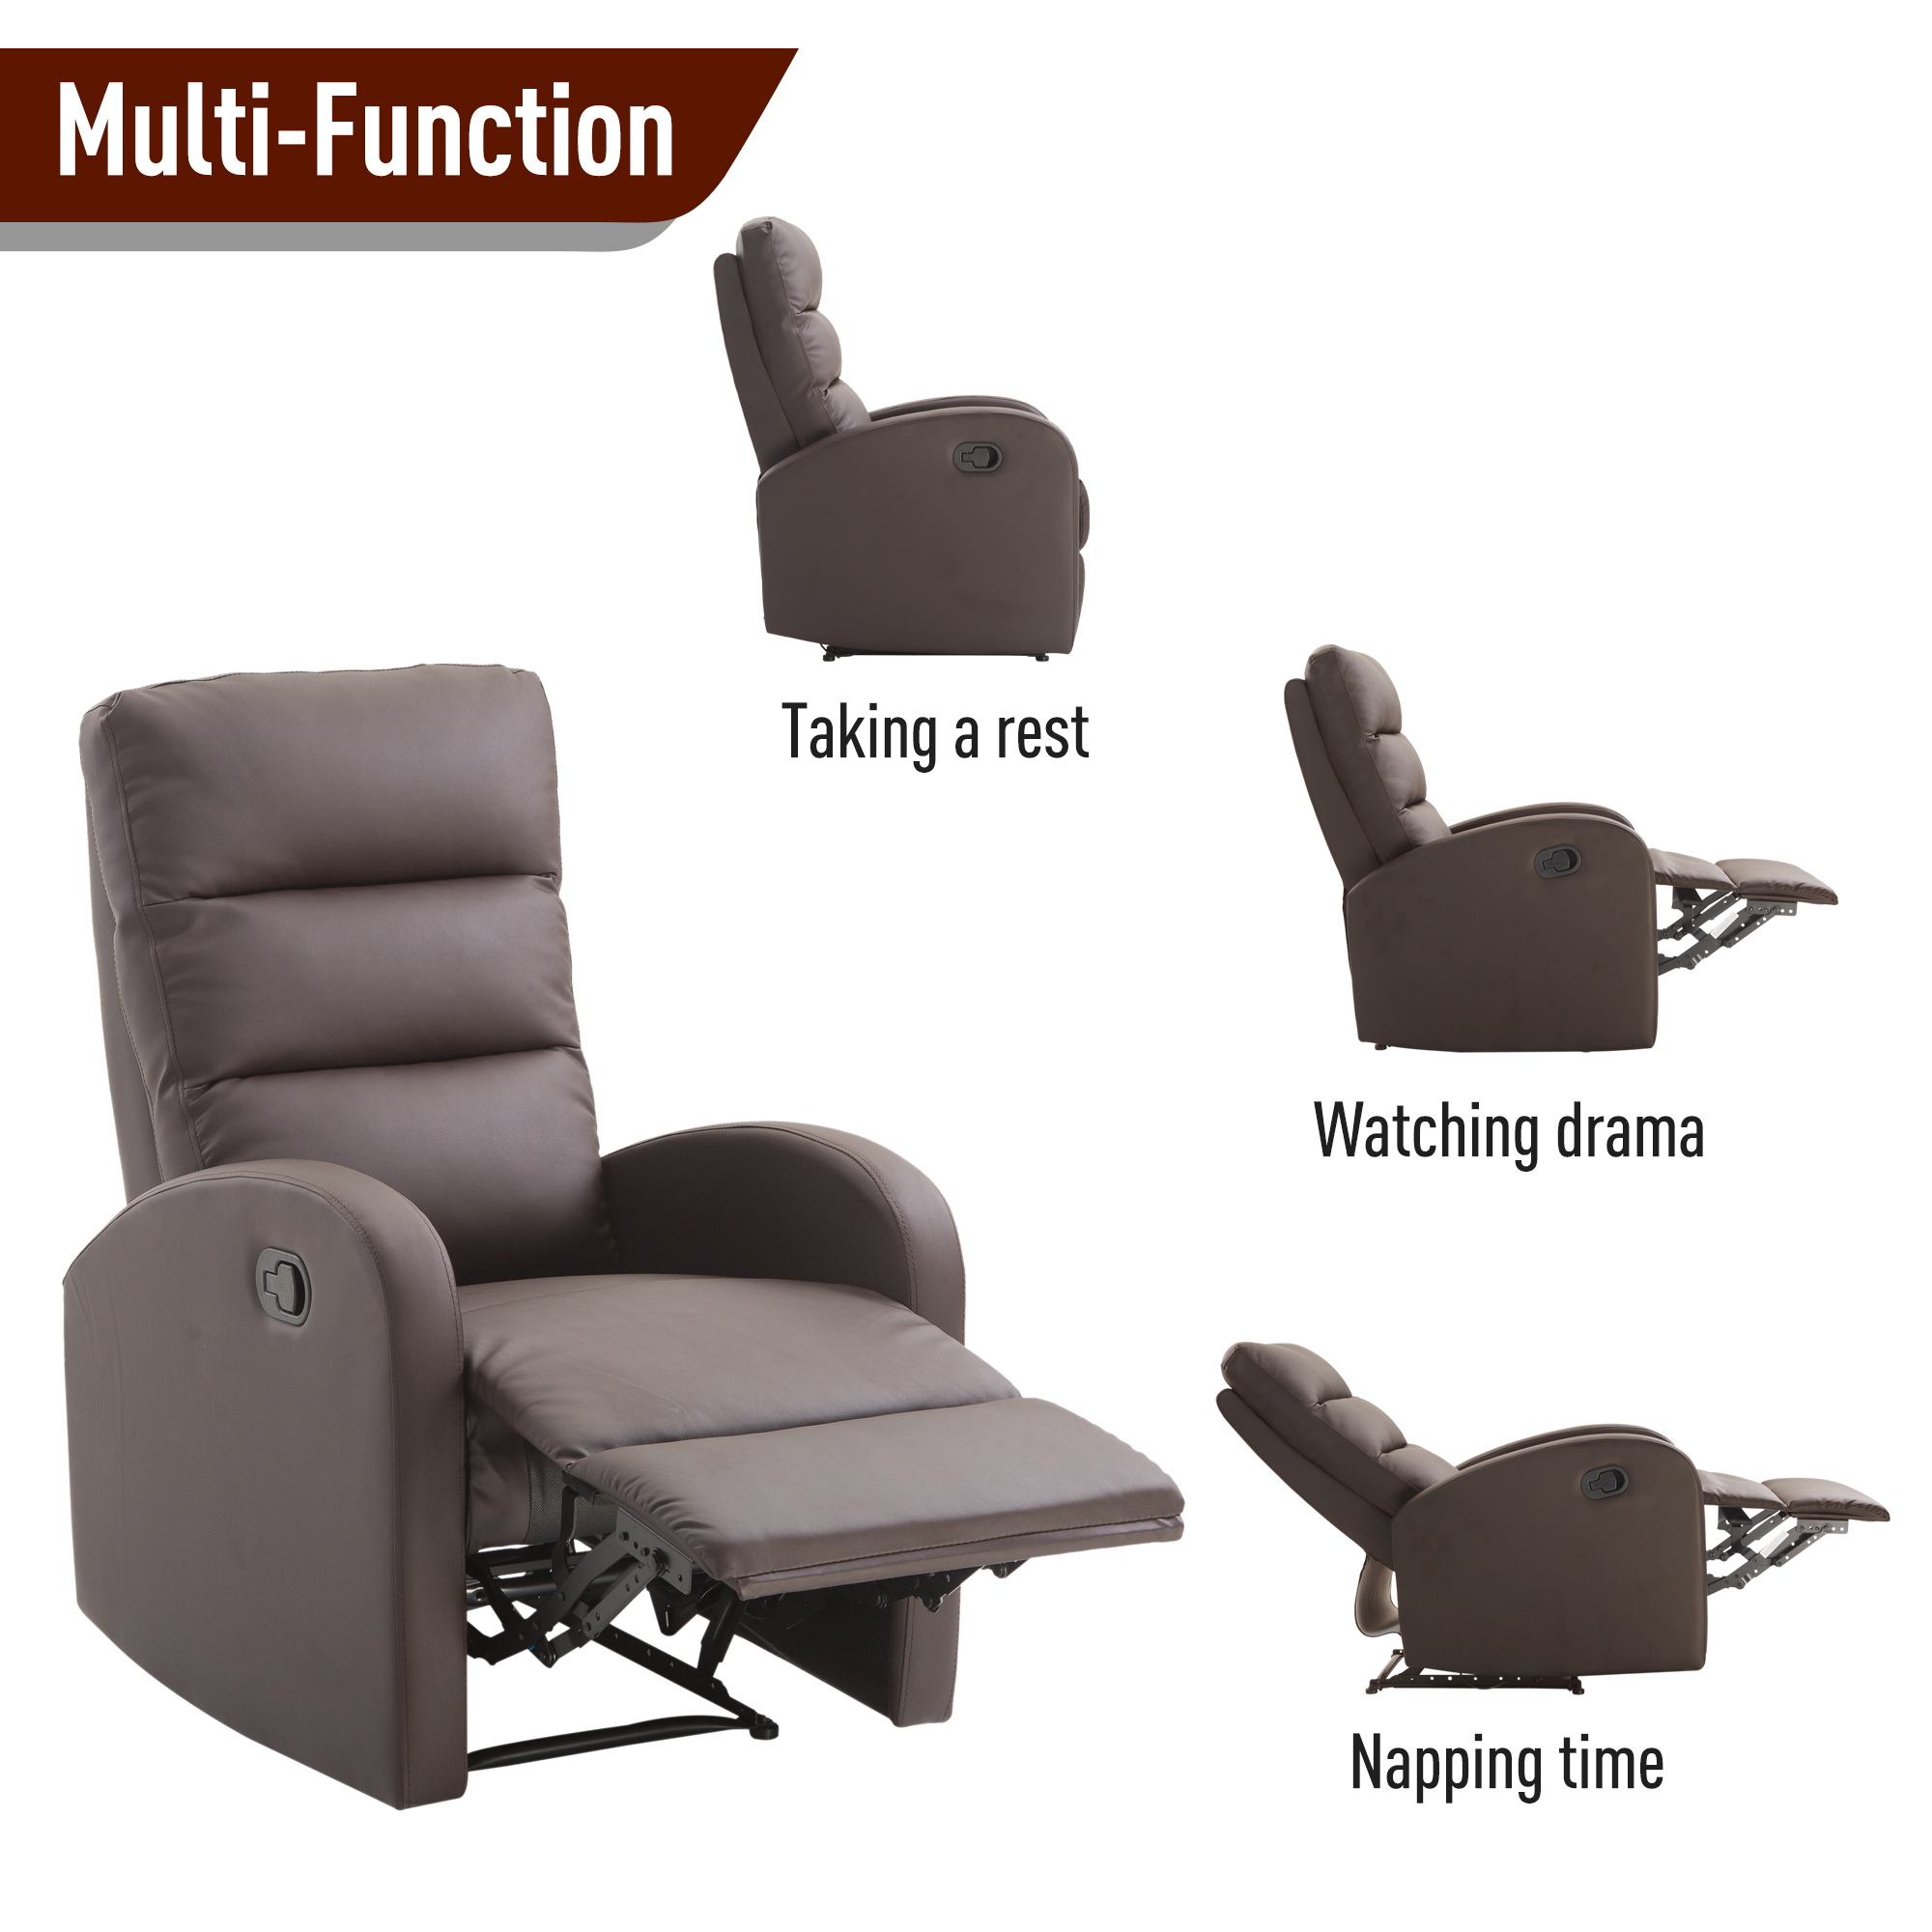 Leather Reclining Chairs Details About Pu Leather Recliner Sofa Armrest Chair Living Room Reclining Furniture Footrest